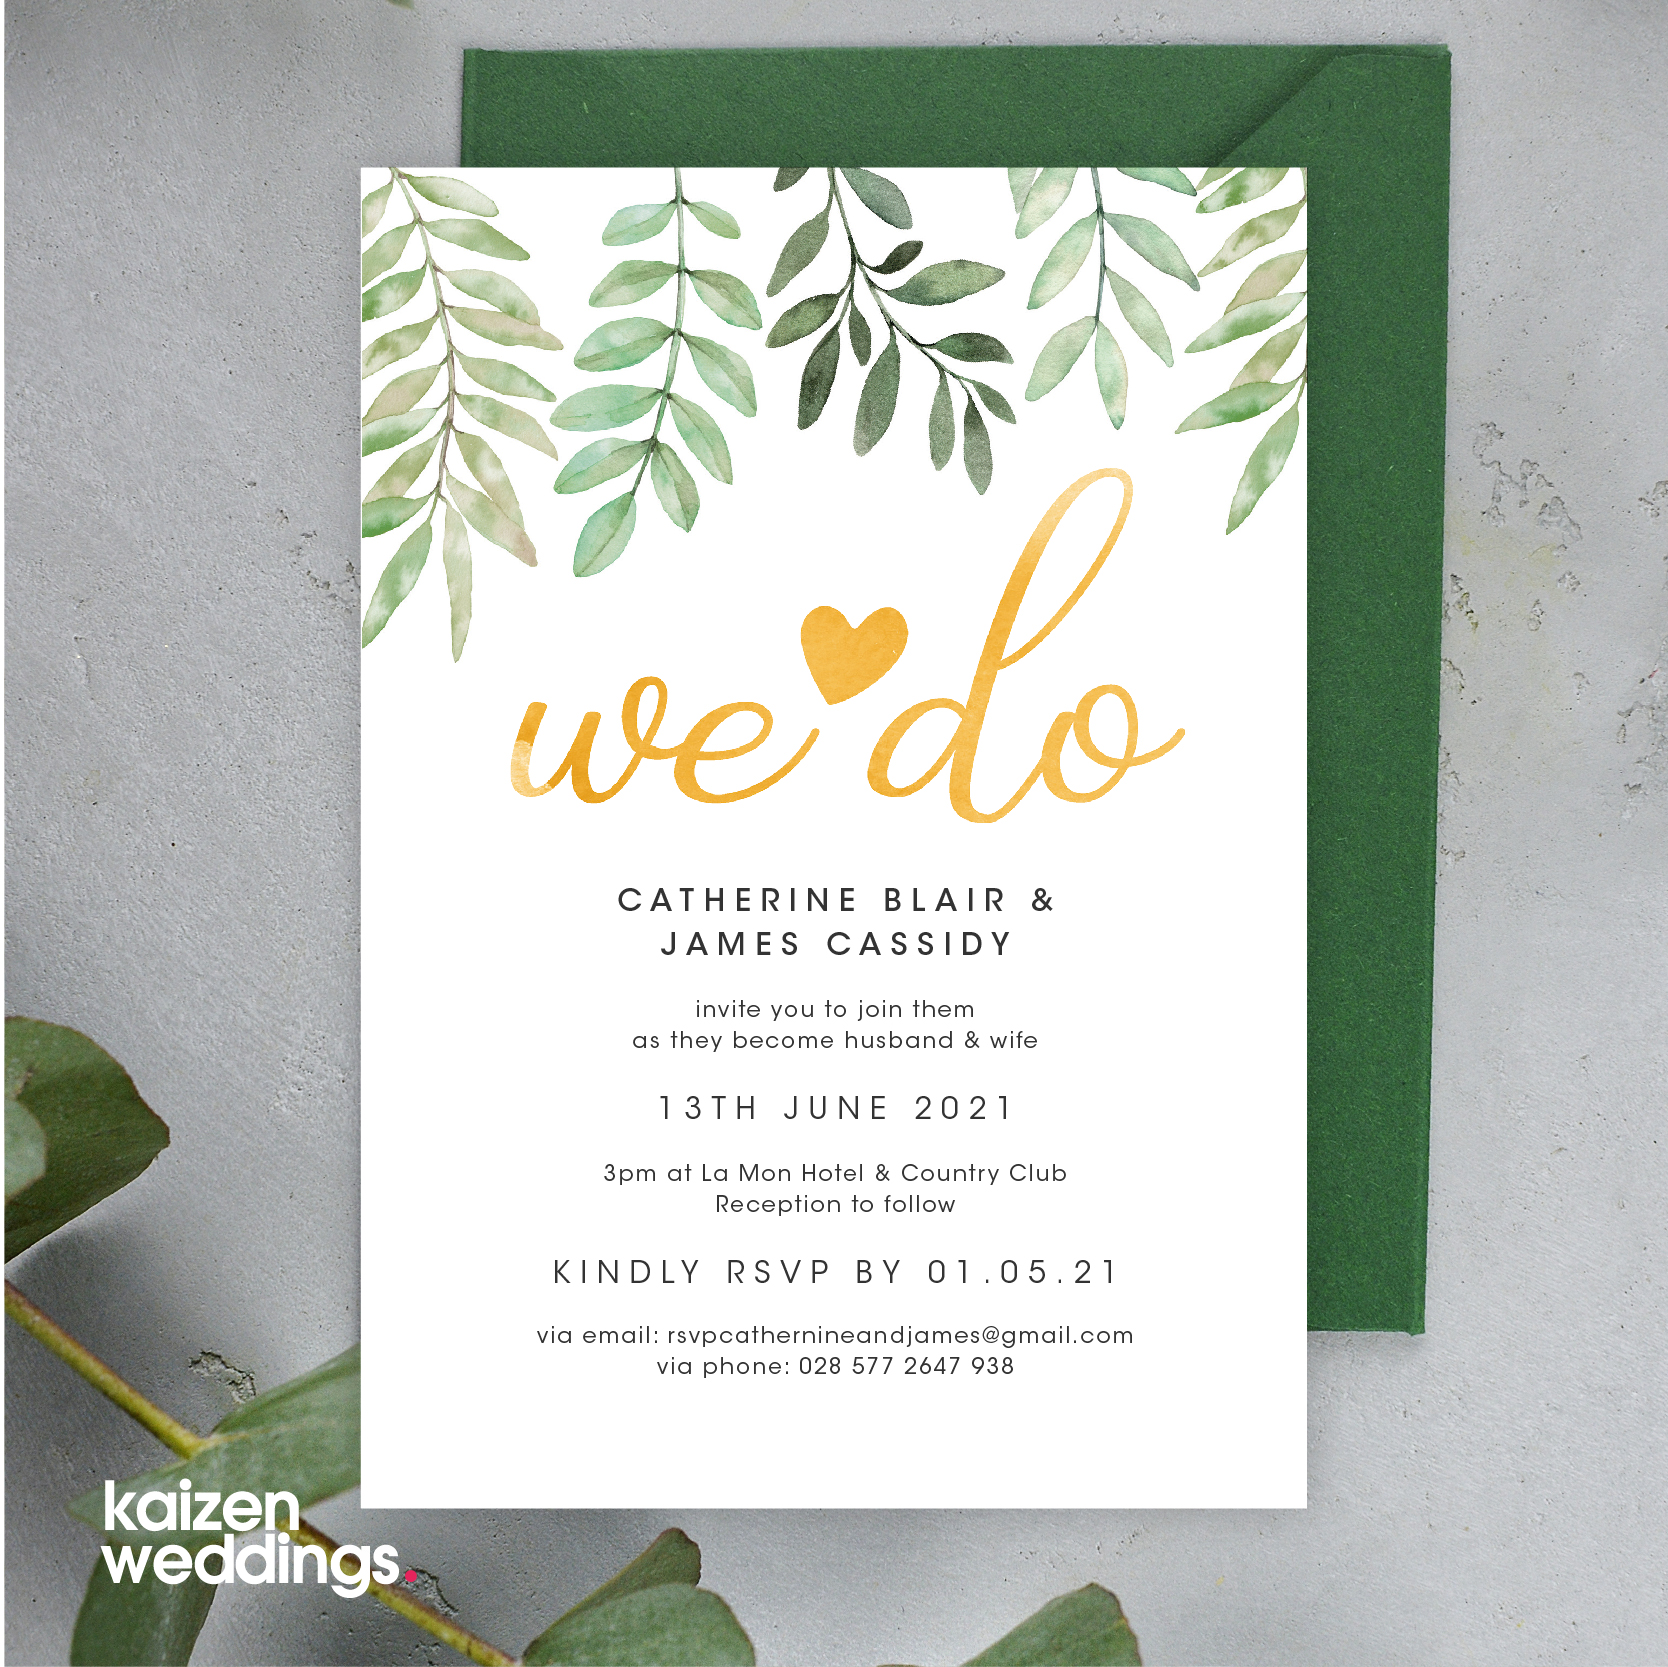 Clever Wedding Ideas: Tips And Ideas For Unique Wedding Invitation Designs